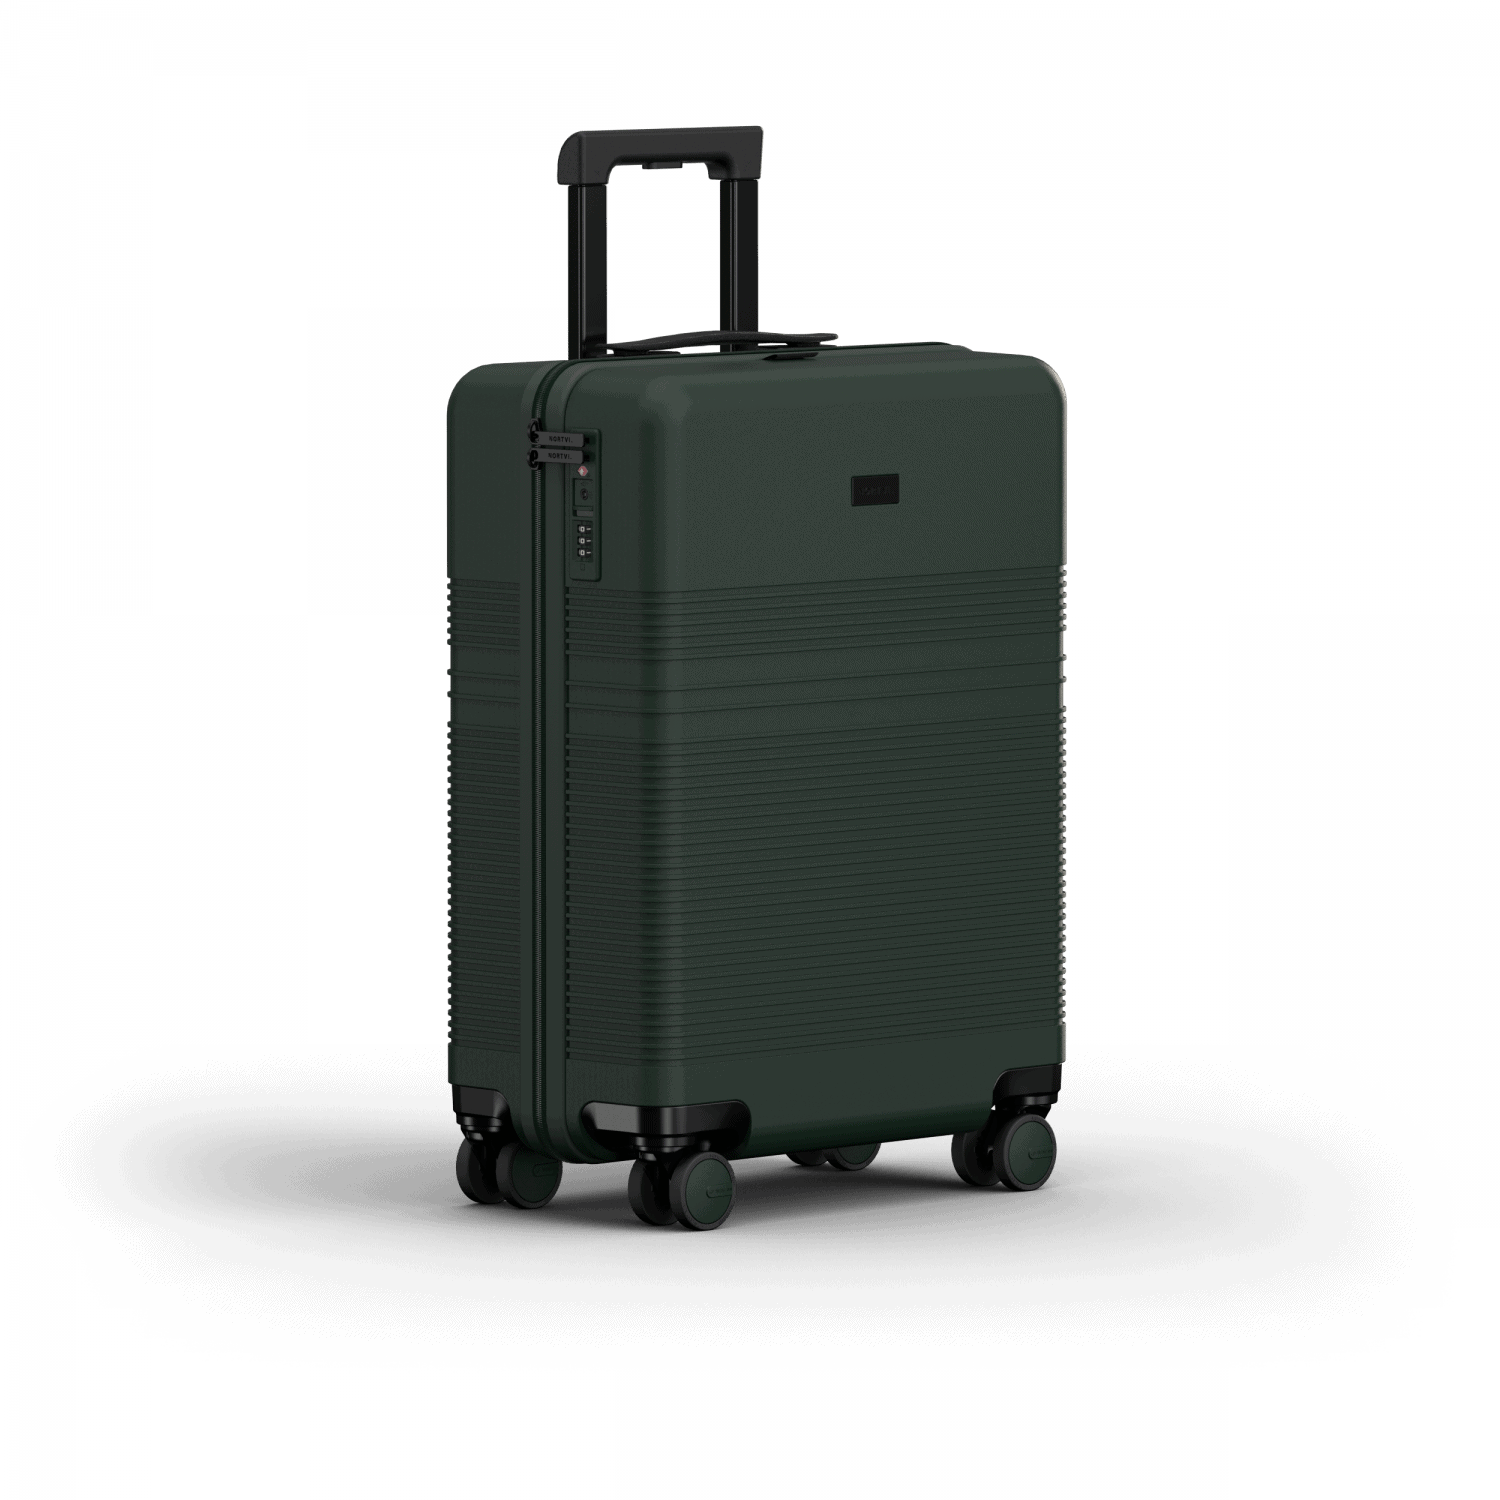 NORTVI sustainable design suitcase Rainforest Green Essential 36 L gemaakt van duurzaam materiaal.